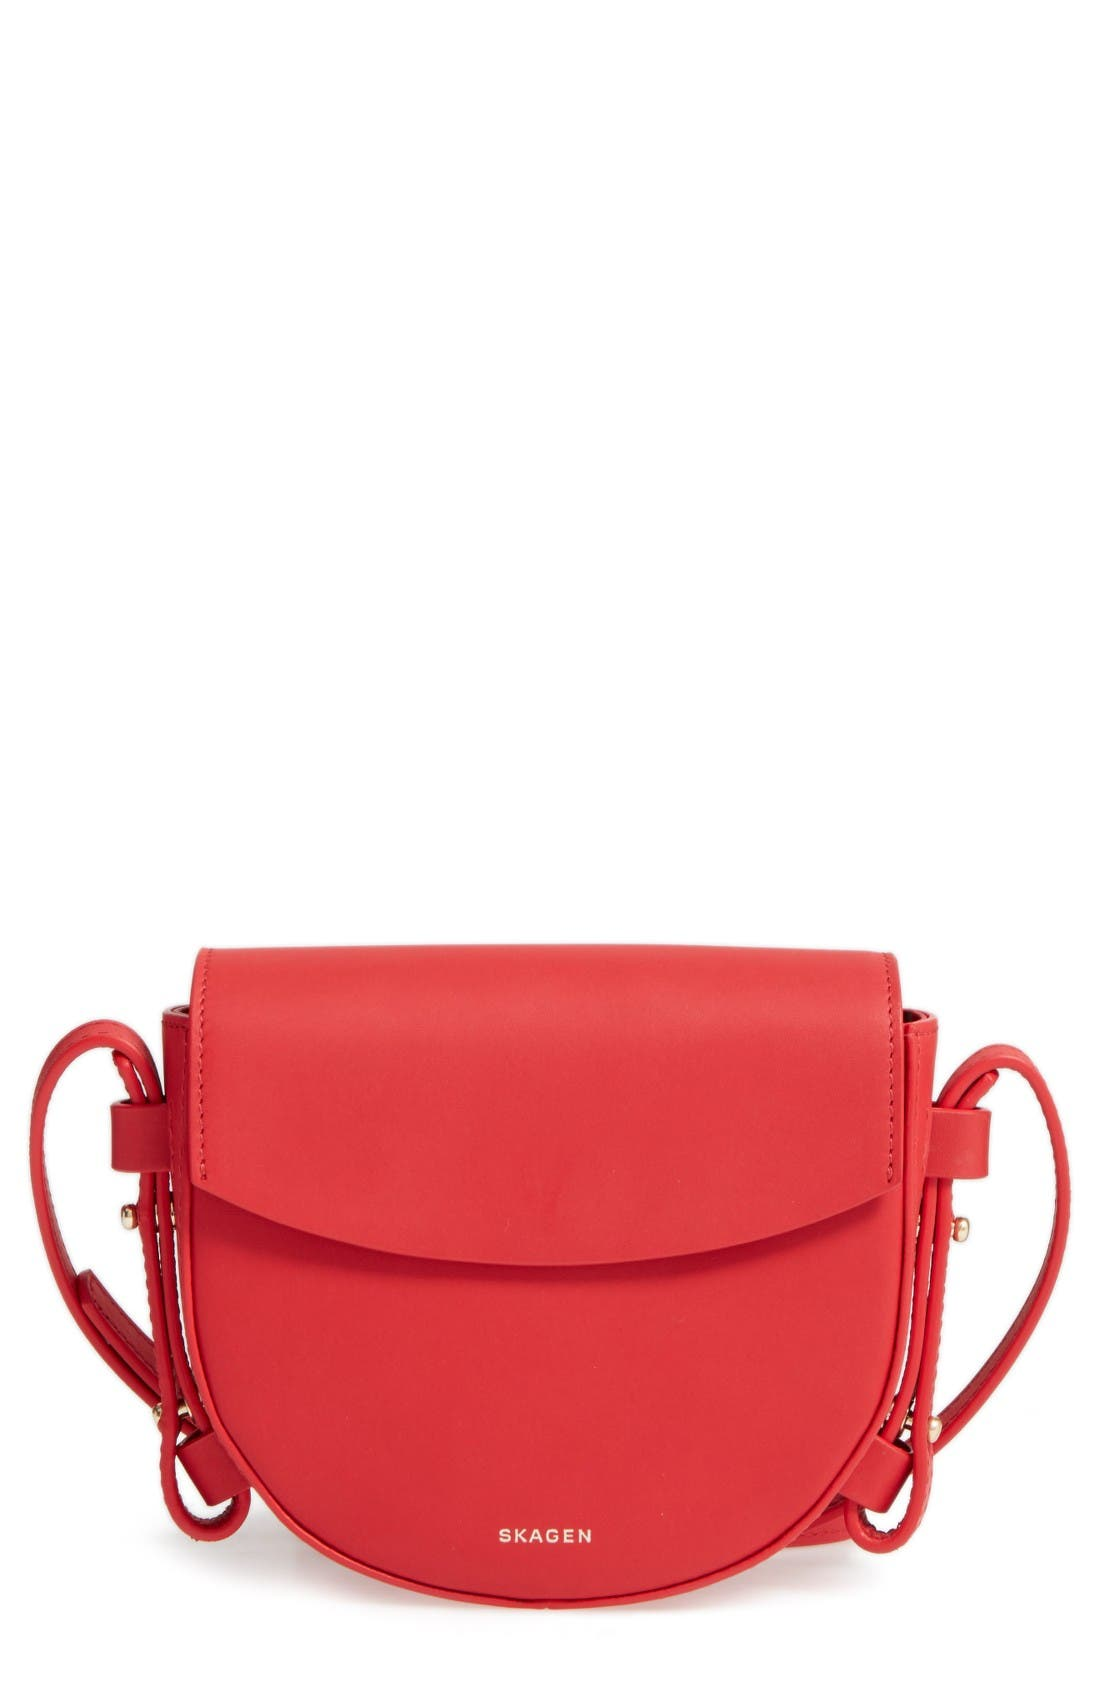 SKAGEN Mini Lobelle Leather Saddle Bag